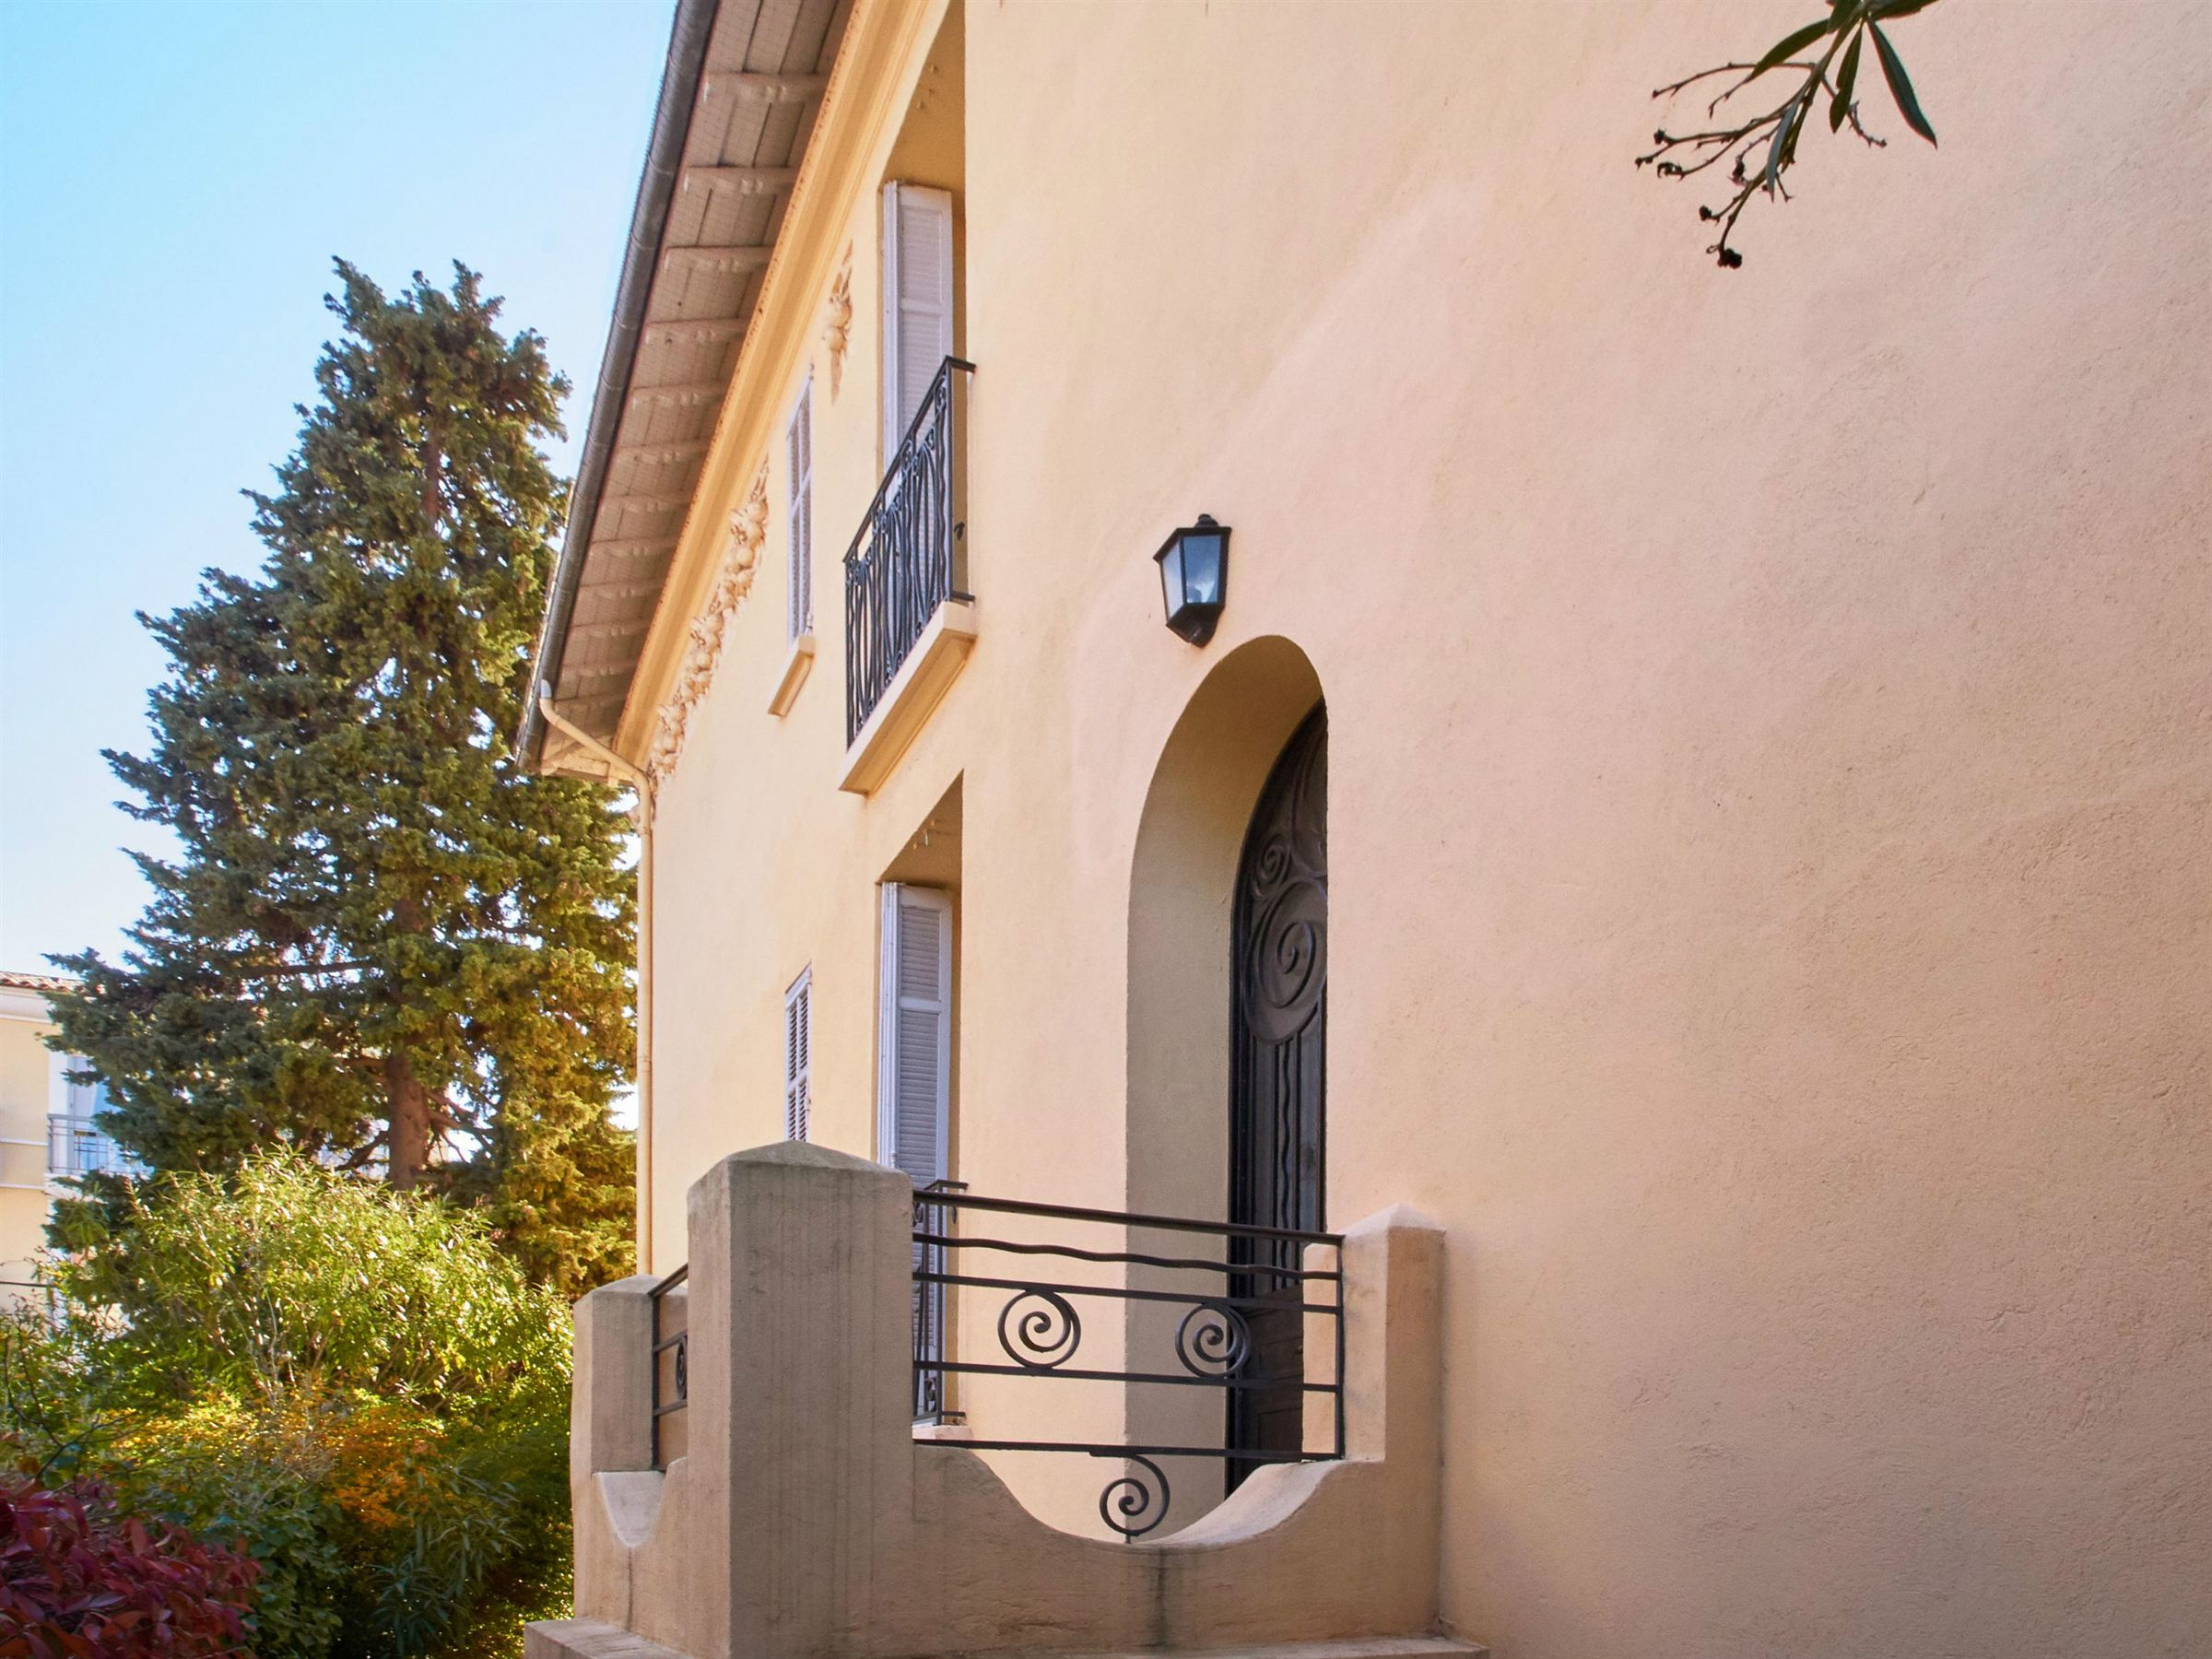 Single Family Home for Sale at Charming mansion in the heart of Cannes Cannes, Provence-Alpes-Cote D'Azur 06400 France